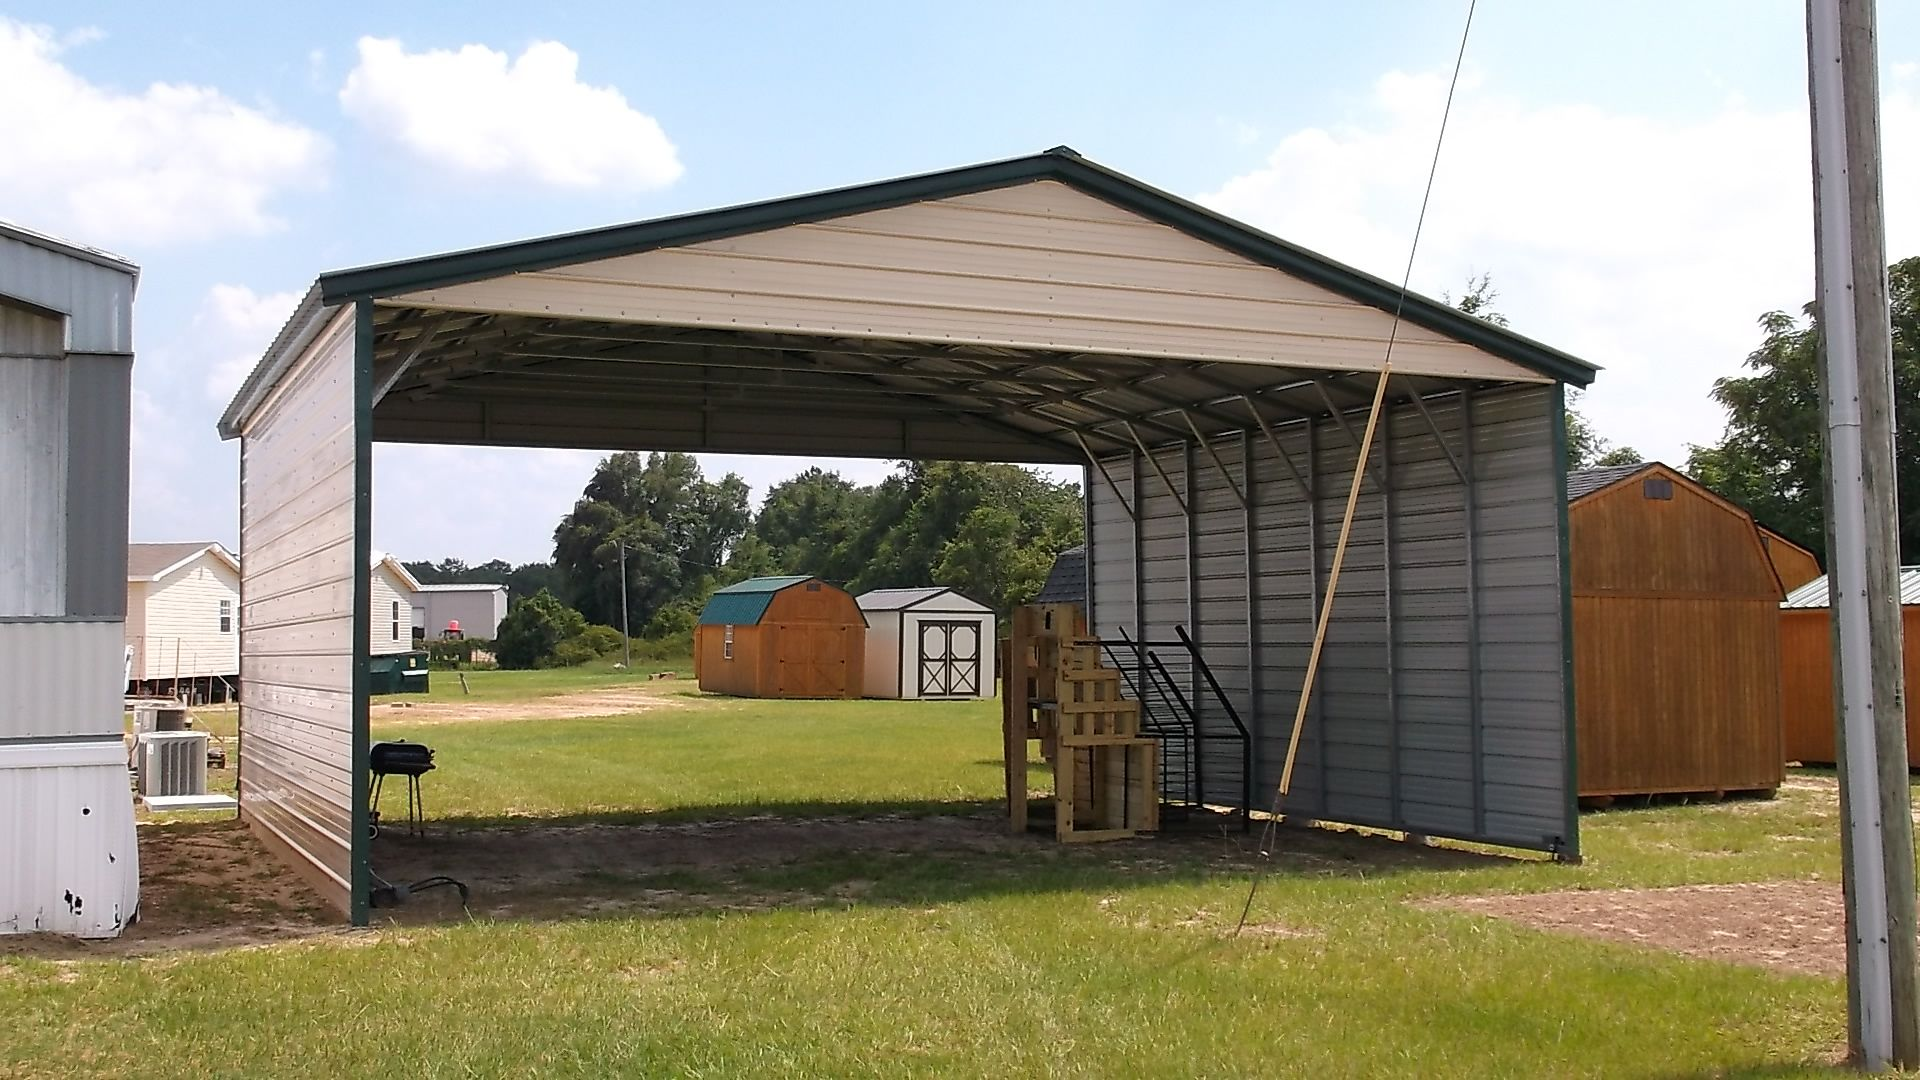 Vertical 2-Sided Metal Carport with Gable Ends 24 x 26 x 10